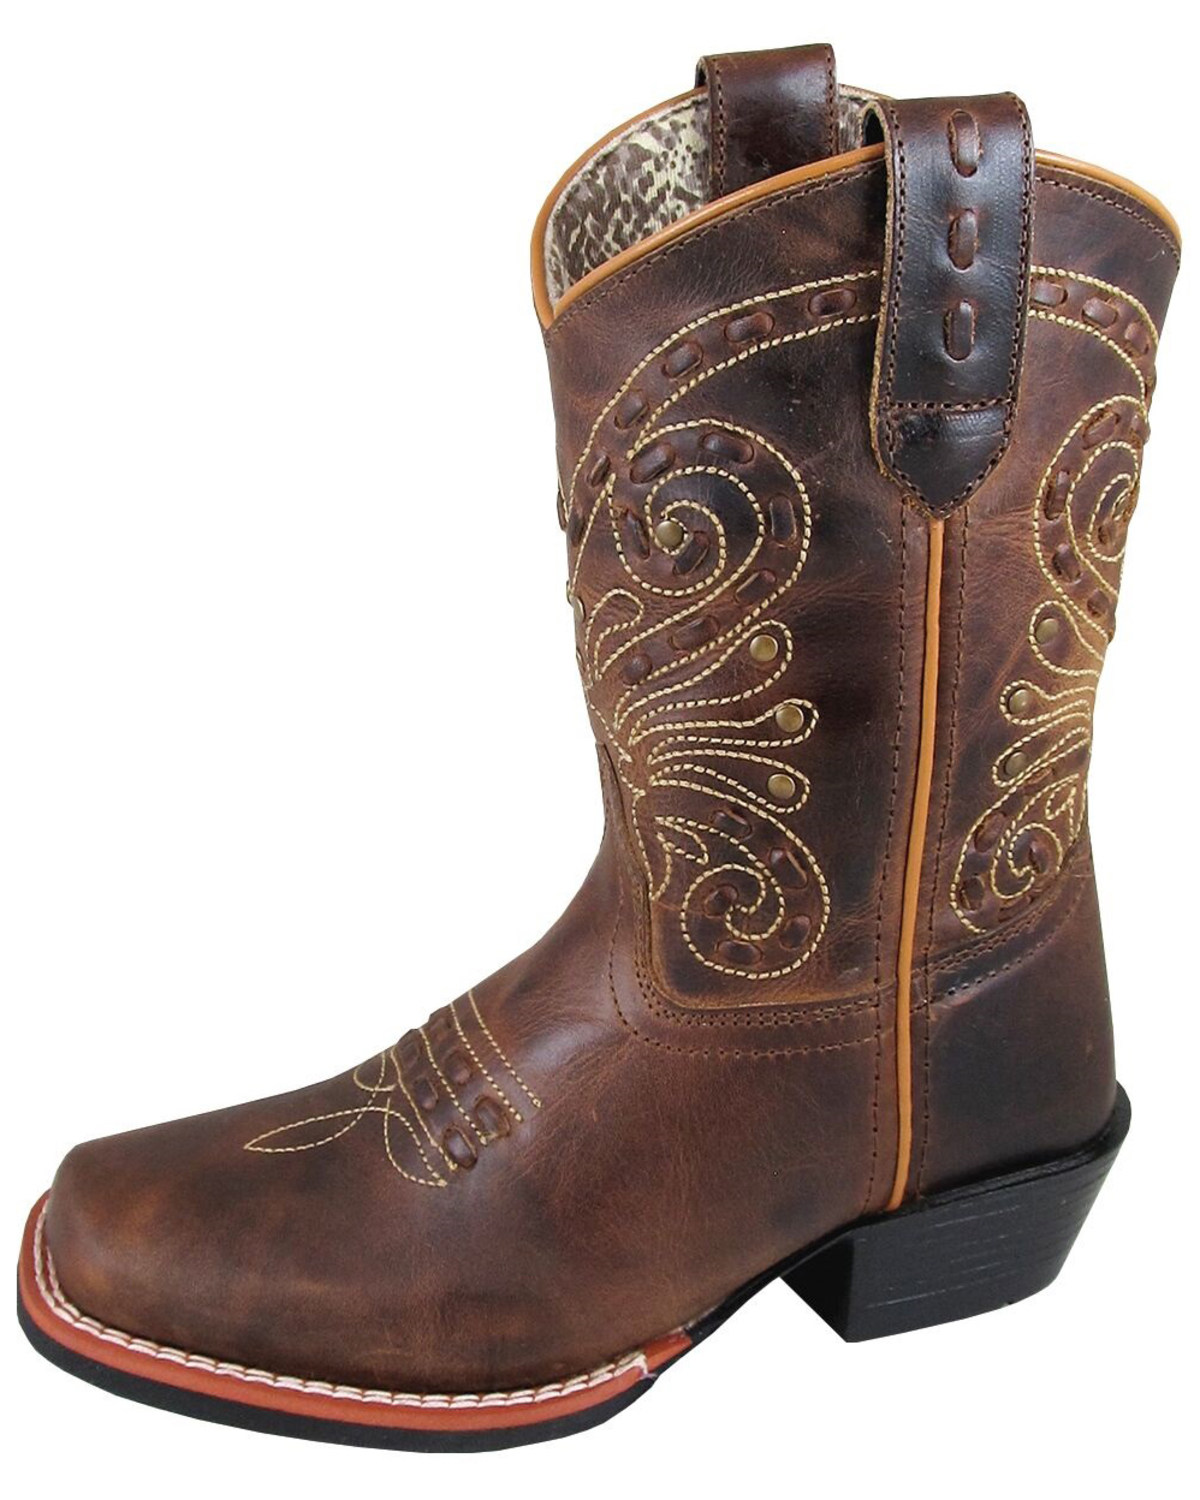 26372528fee Smoky Mountain Youth Girls  Shelby Embellished Western Boots - Square Toe